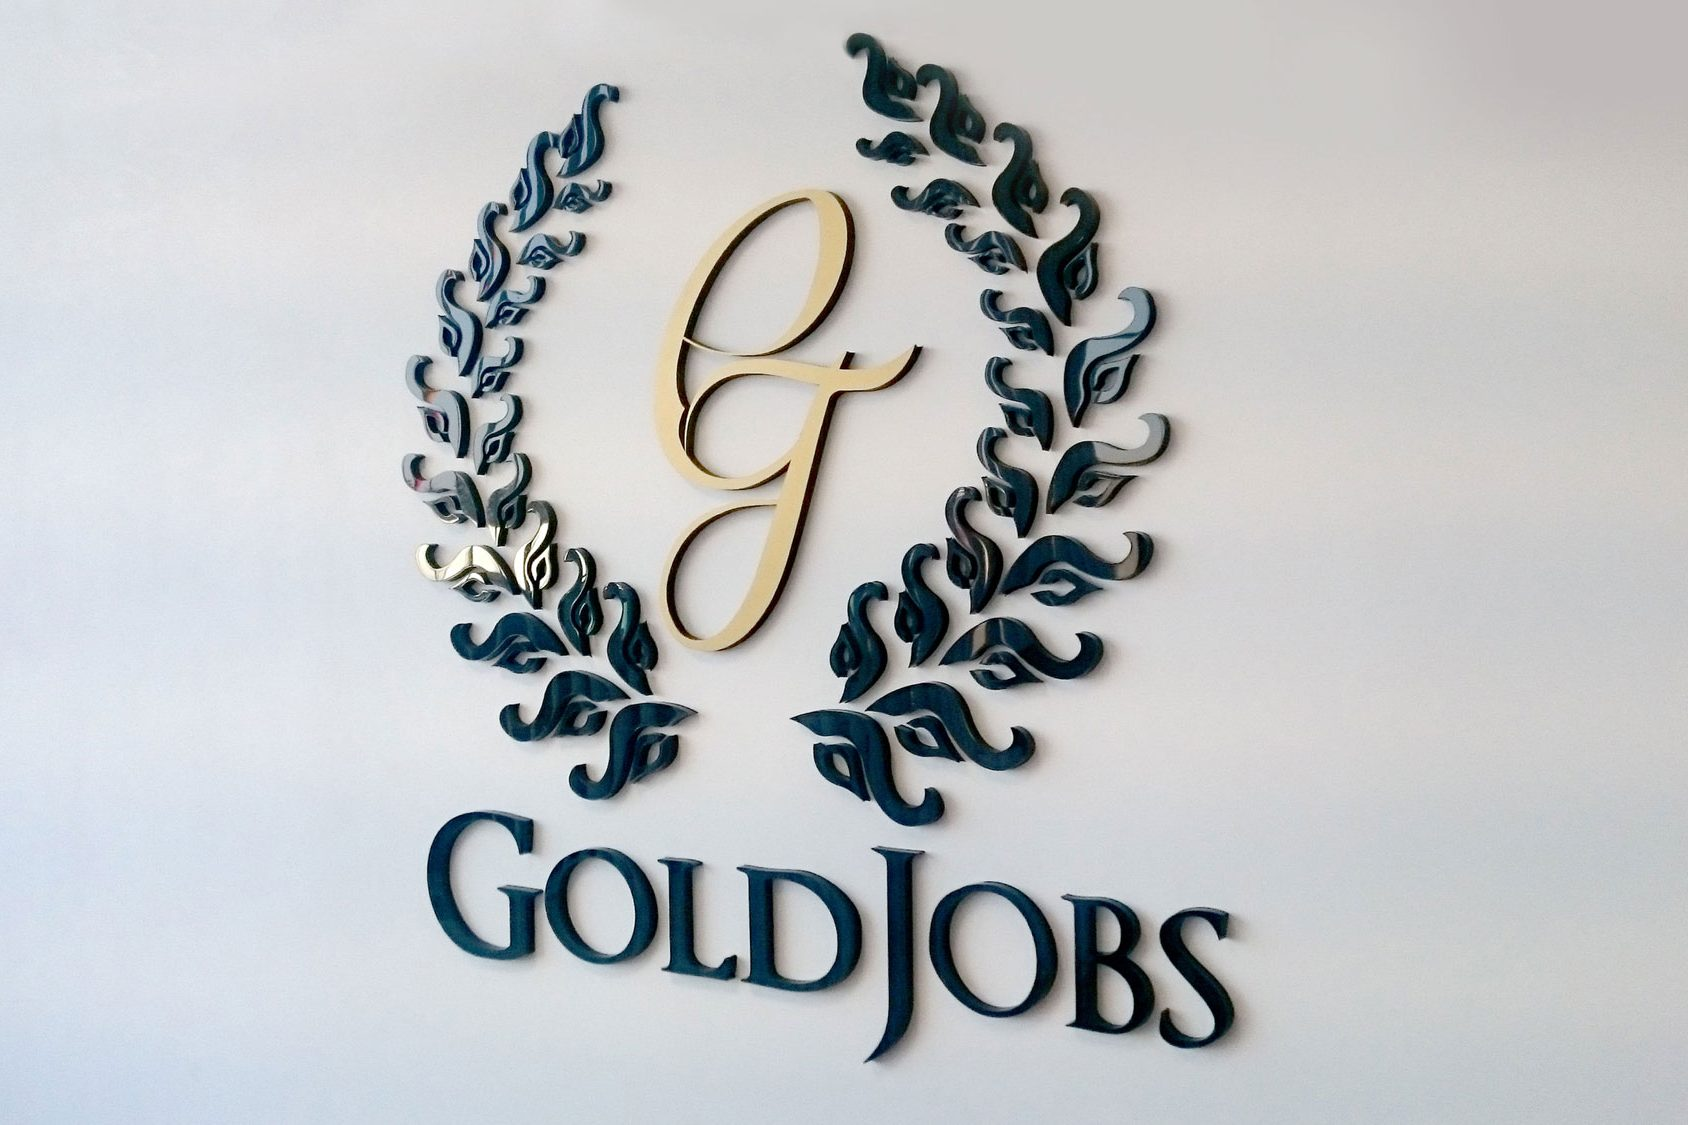 3D logo og GoldJobs on the wall